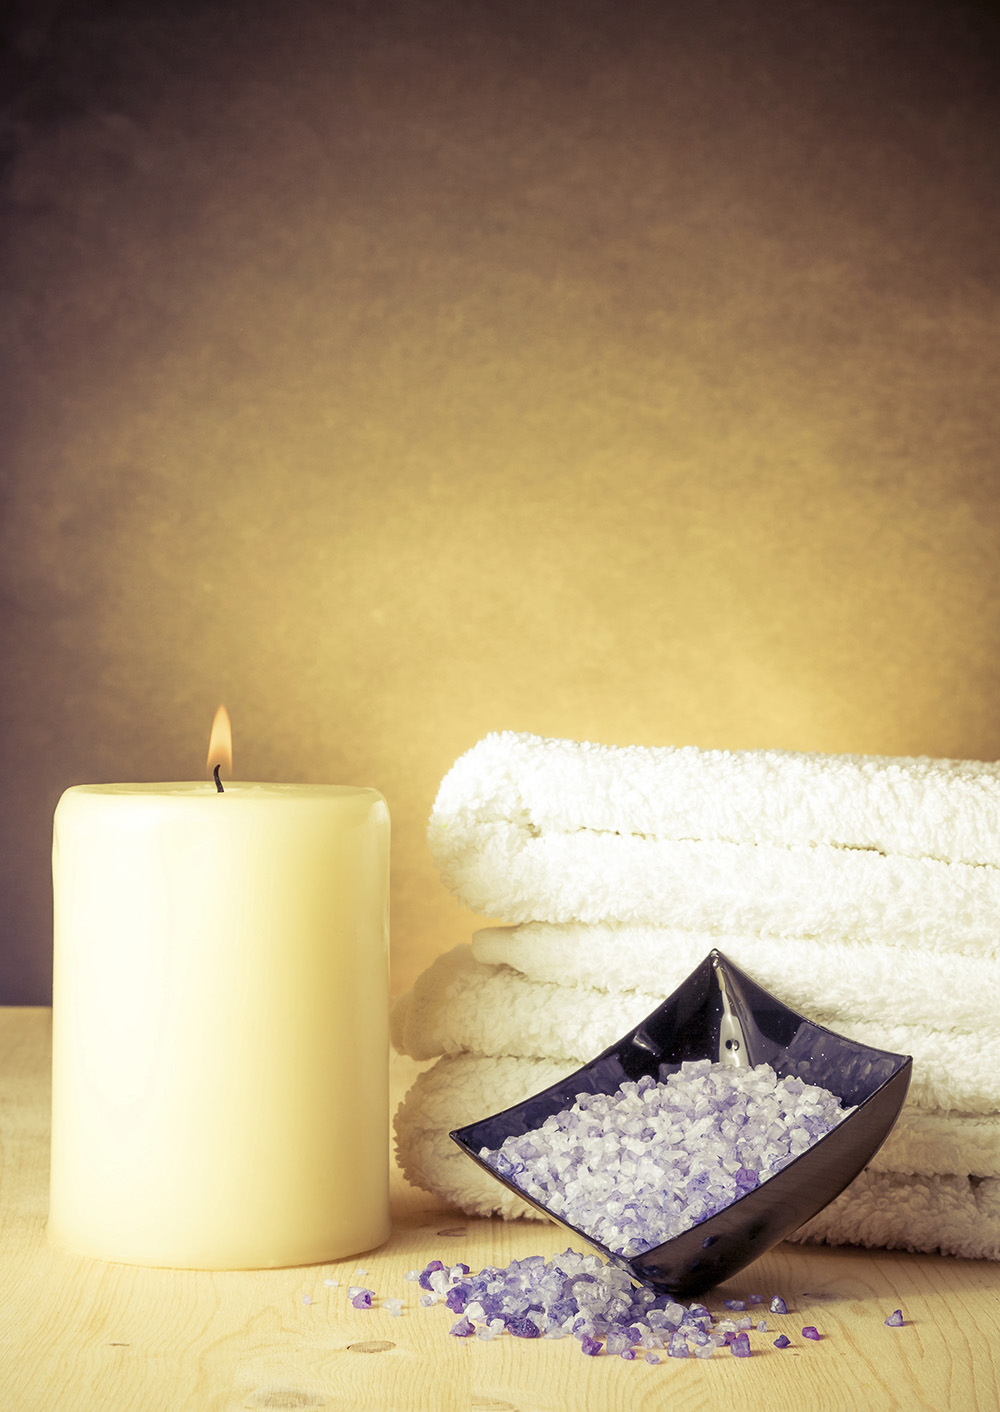 Spa massage border background with towel stacked and sea salt, warm atmosphere